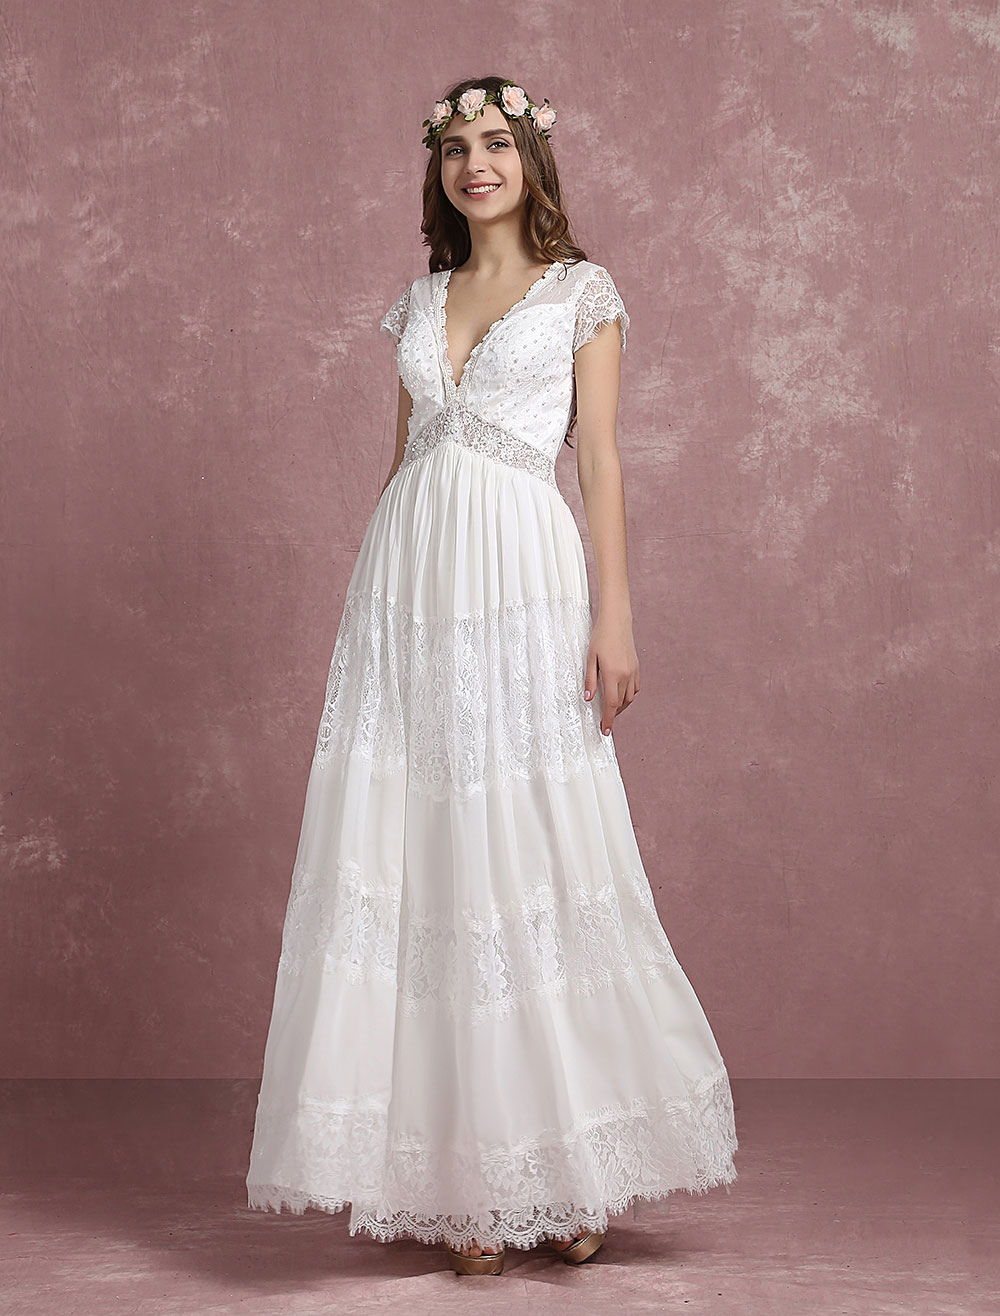 Summer Wedding Dresses 2018 Boho Beach Bridal Gown Lace Beading Chiffon Deep V Neck Cap Sleeve A Line Illusion Back Ankle Length Bridal Dress